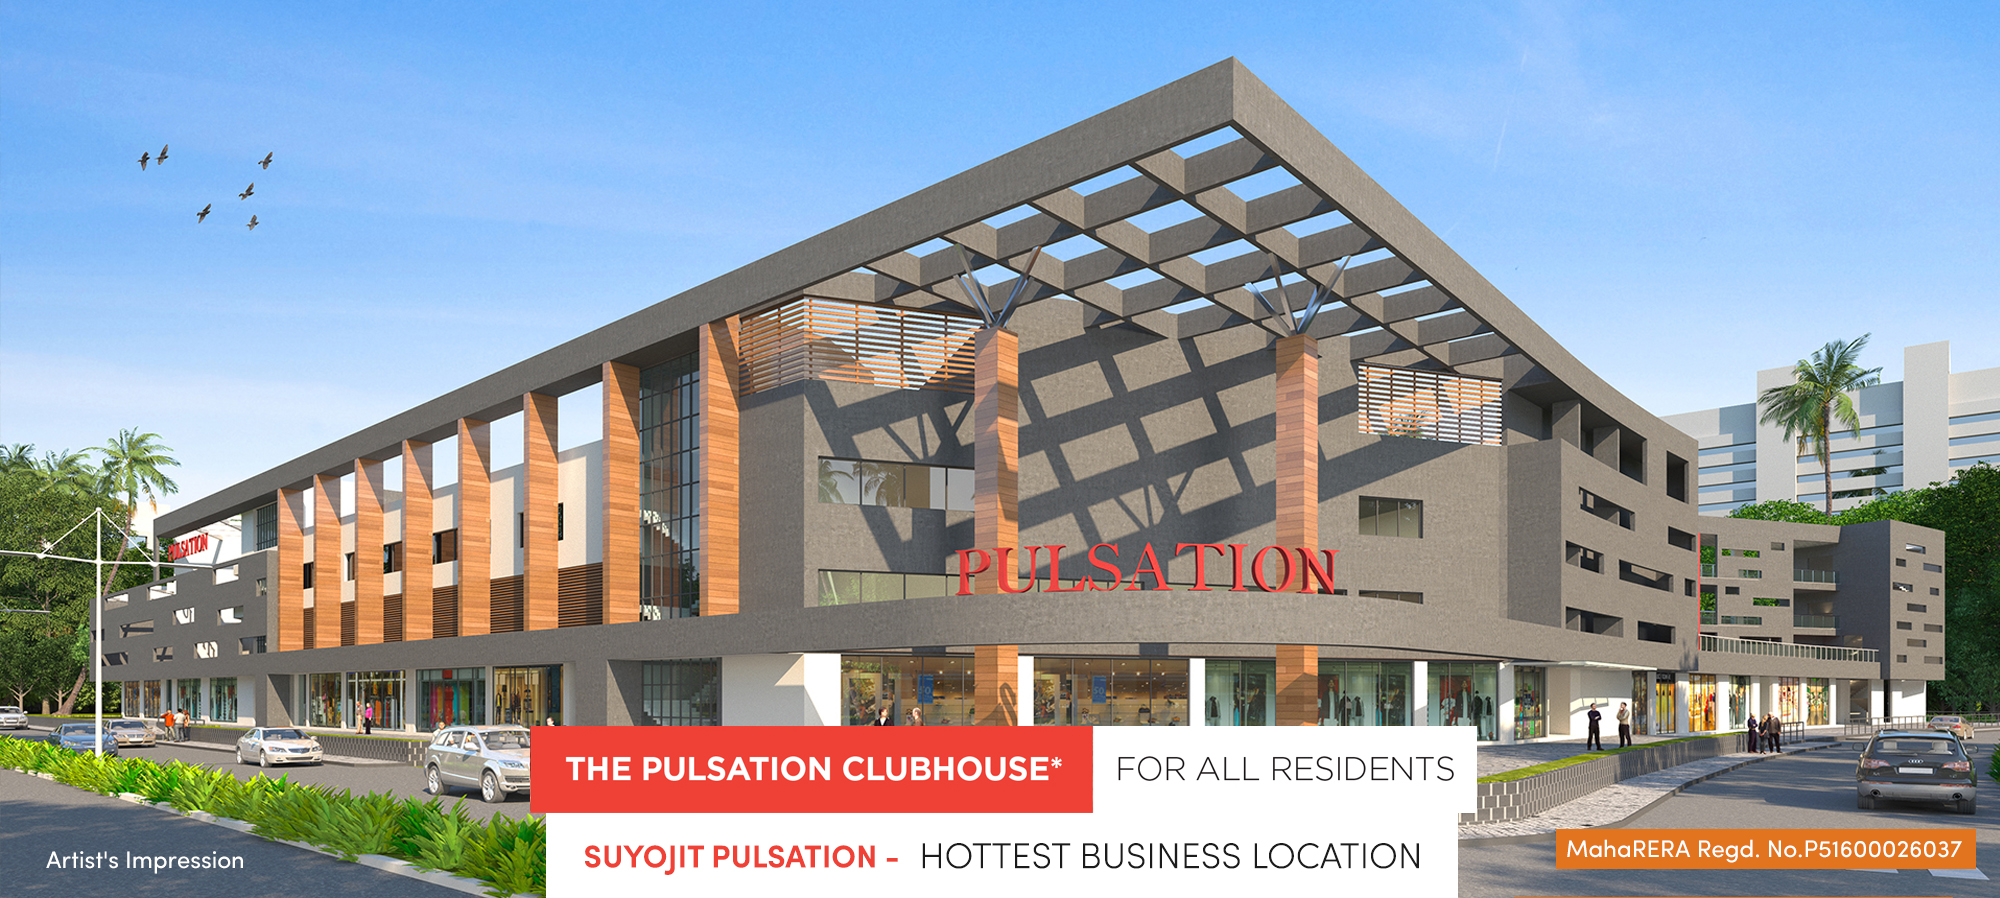 Pulsation Clubhouse